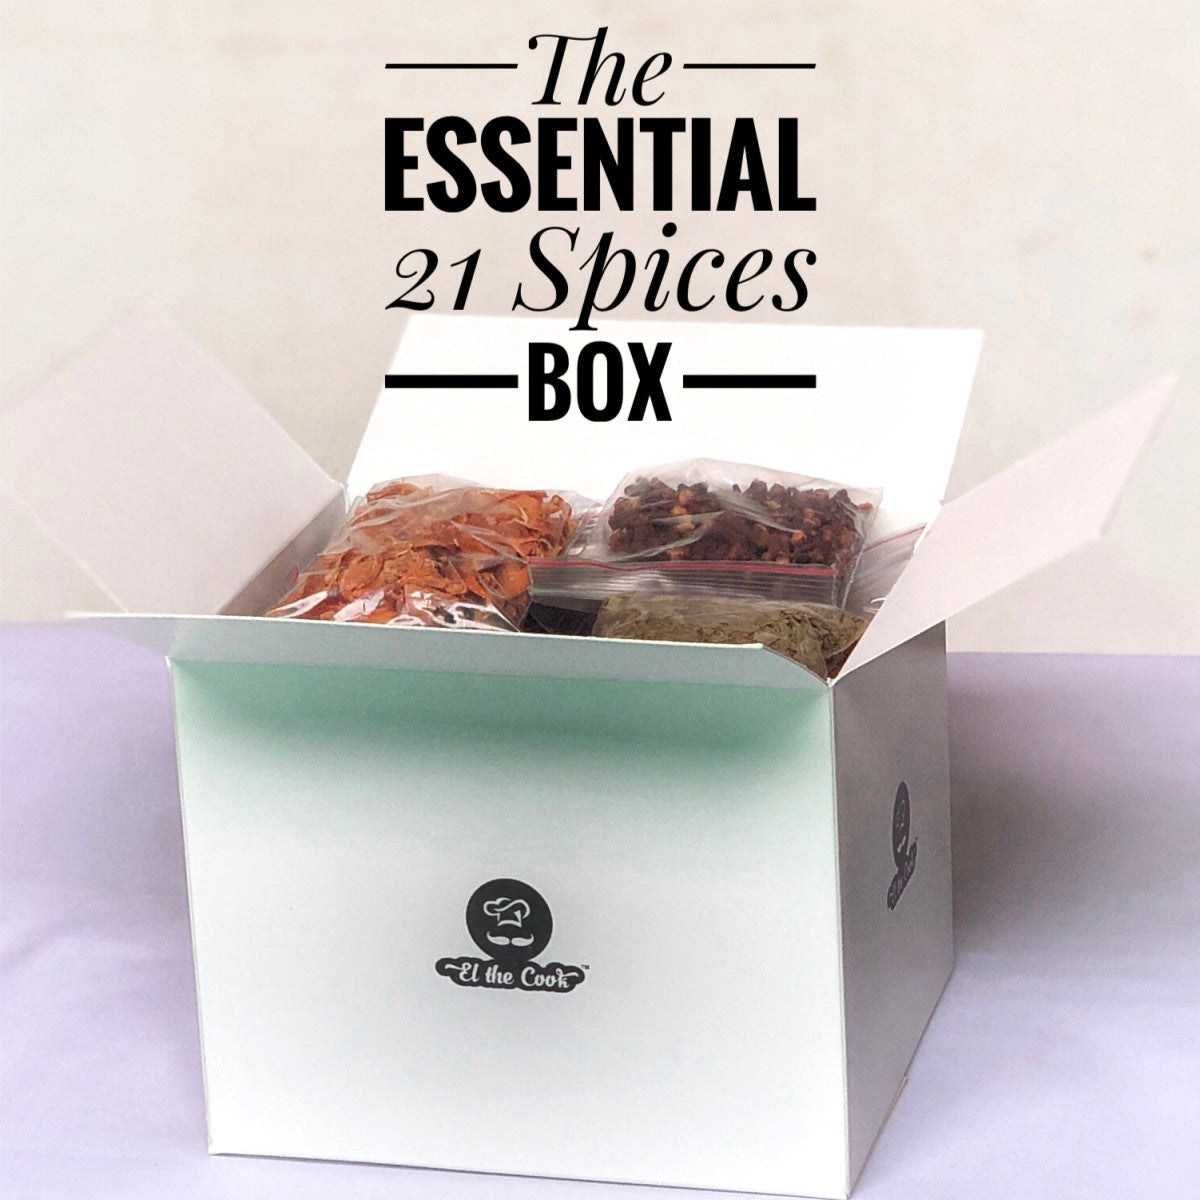 common indian spices, spice box india buy online kitchen box Elthecook buy online, shipping worldwide, spice box, indian spices,